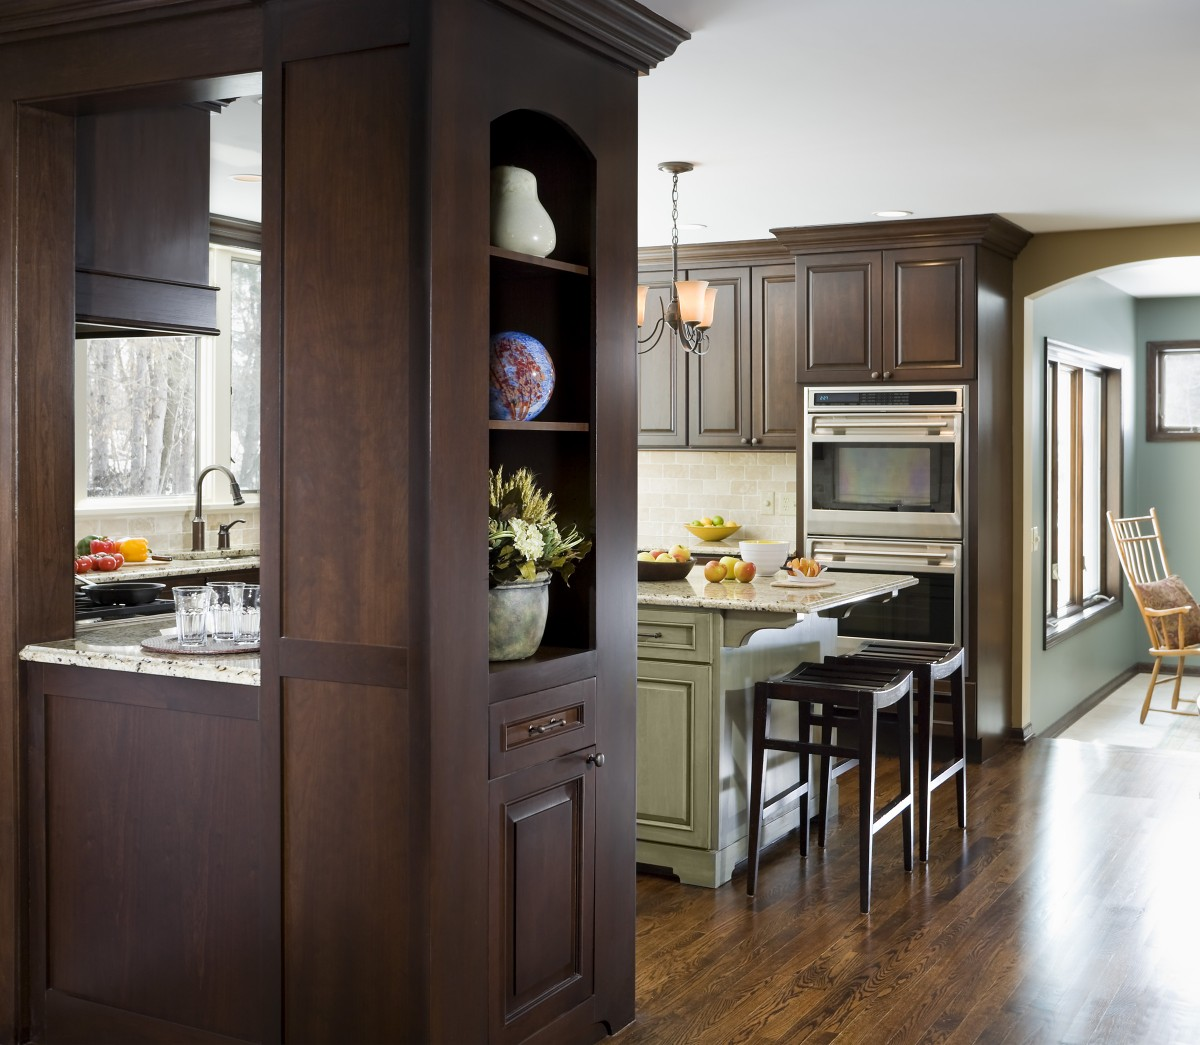 In the kitchen, honey oak cabinets were replaced by dark-stained custom cherry perimeter cabinets and a pigment stained island.  A small addition made the kitchen more spacious, and large new windows provide panoramic views of the wooded lot.